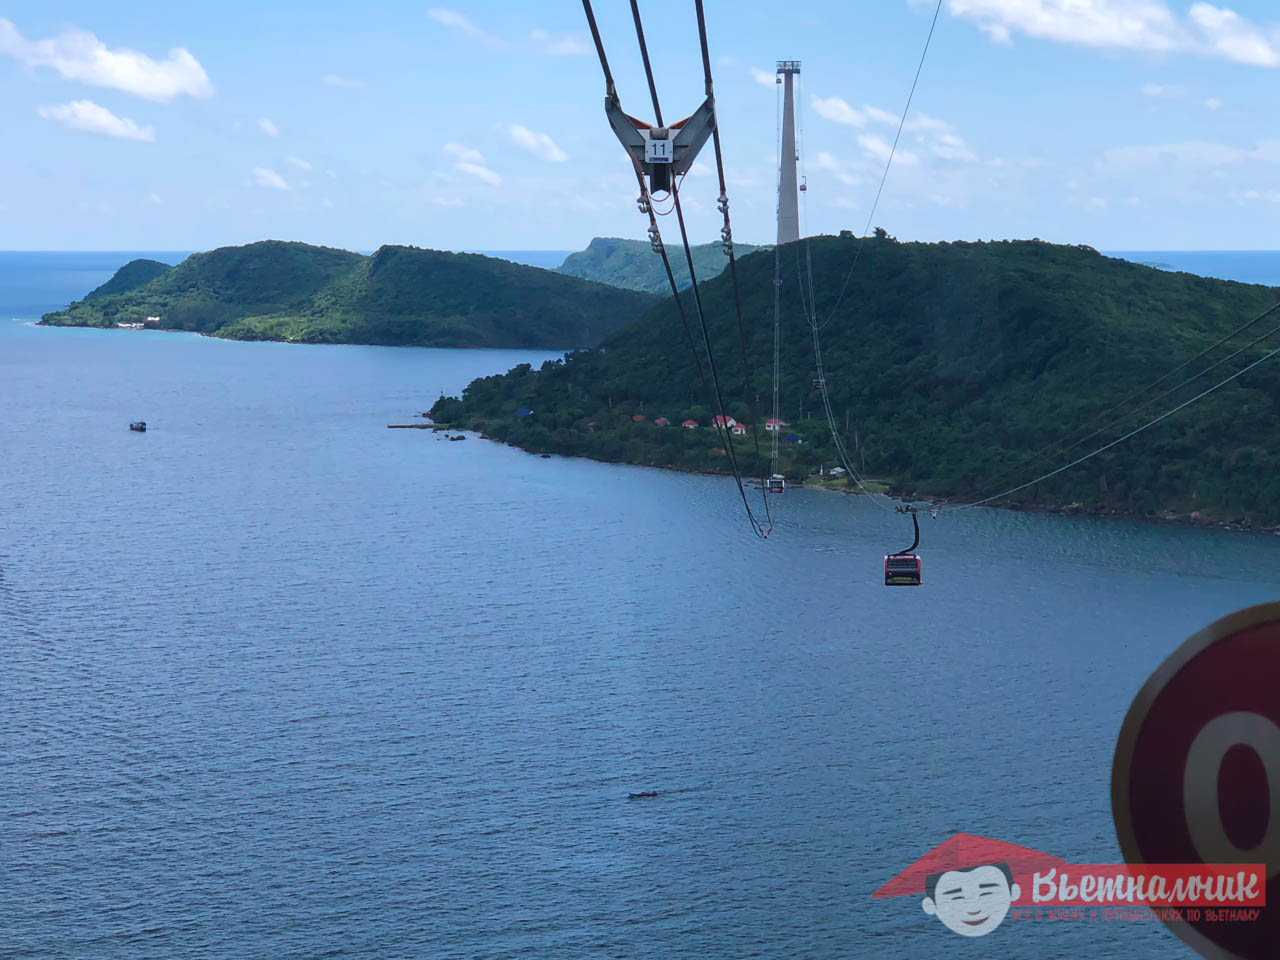 The longest cable car in the world